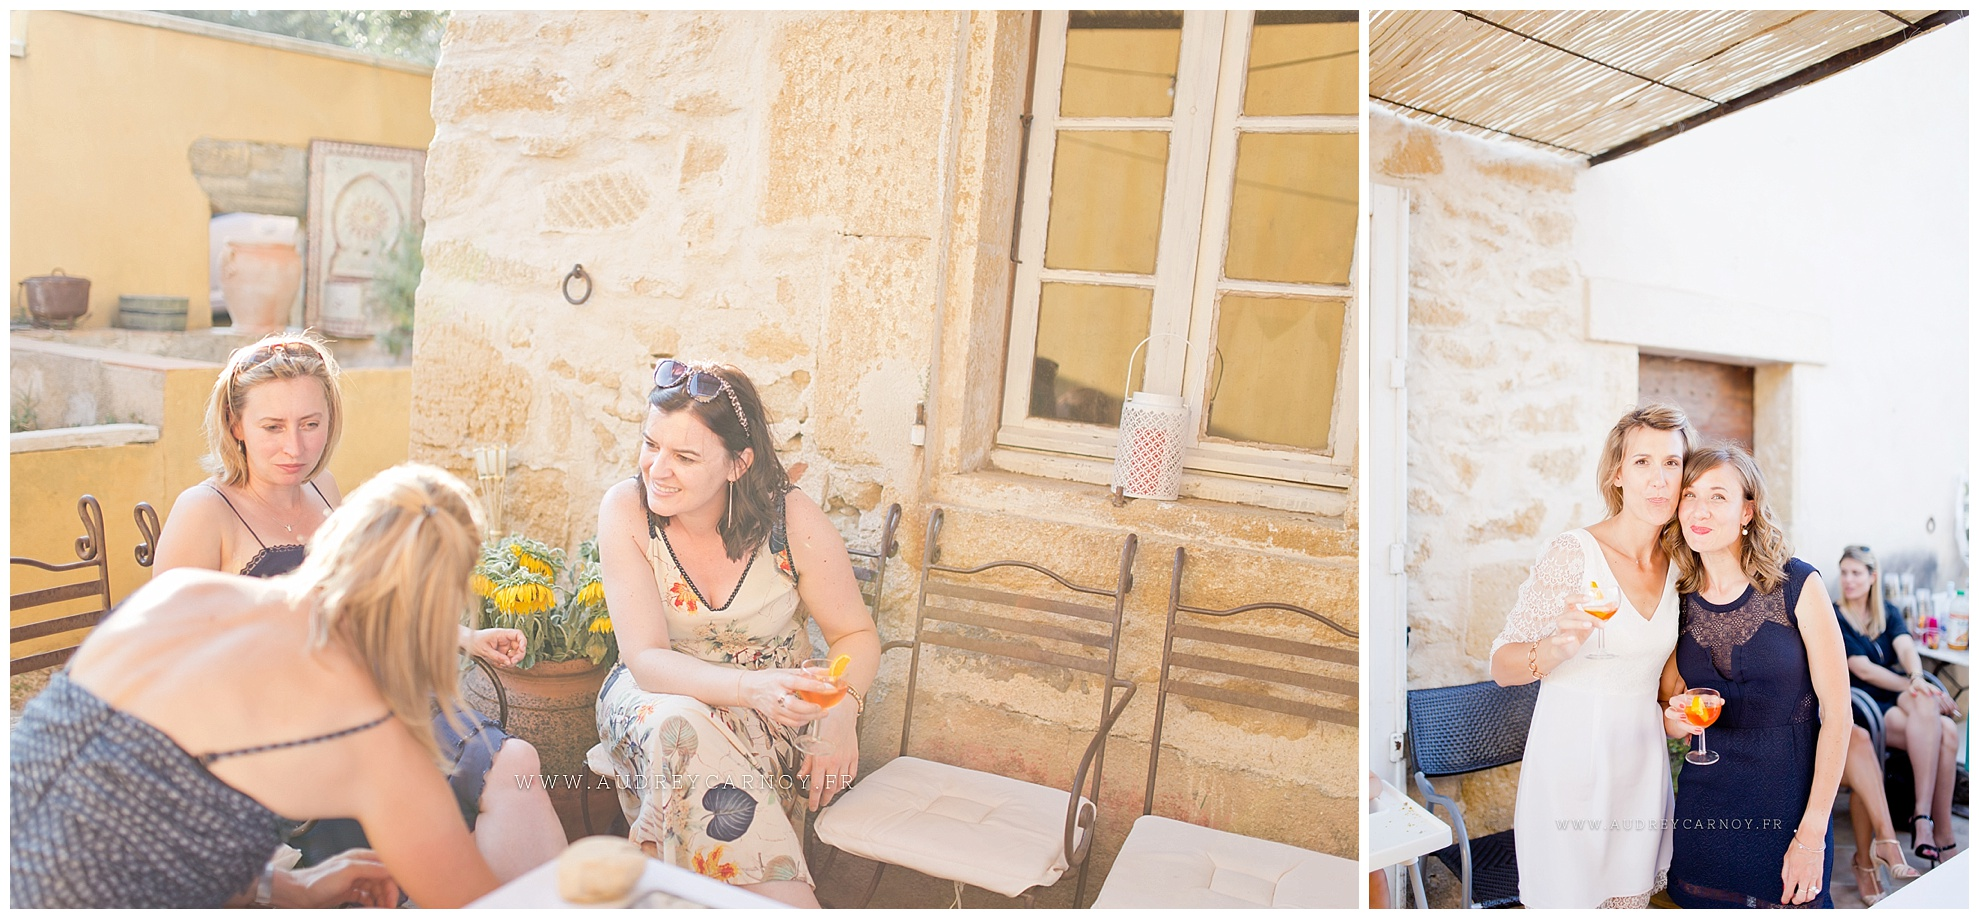 Mariage Pertuis | Laurence & Anthony 38